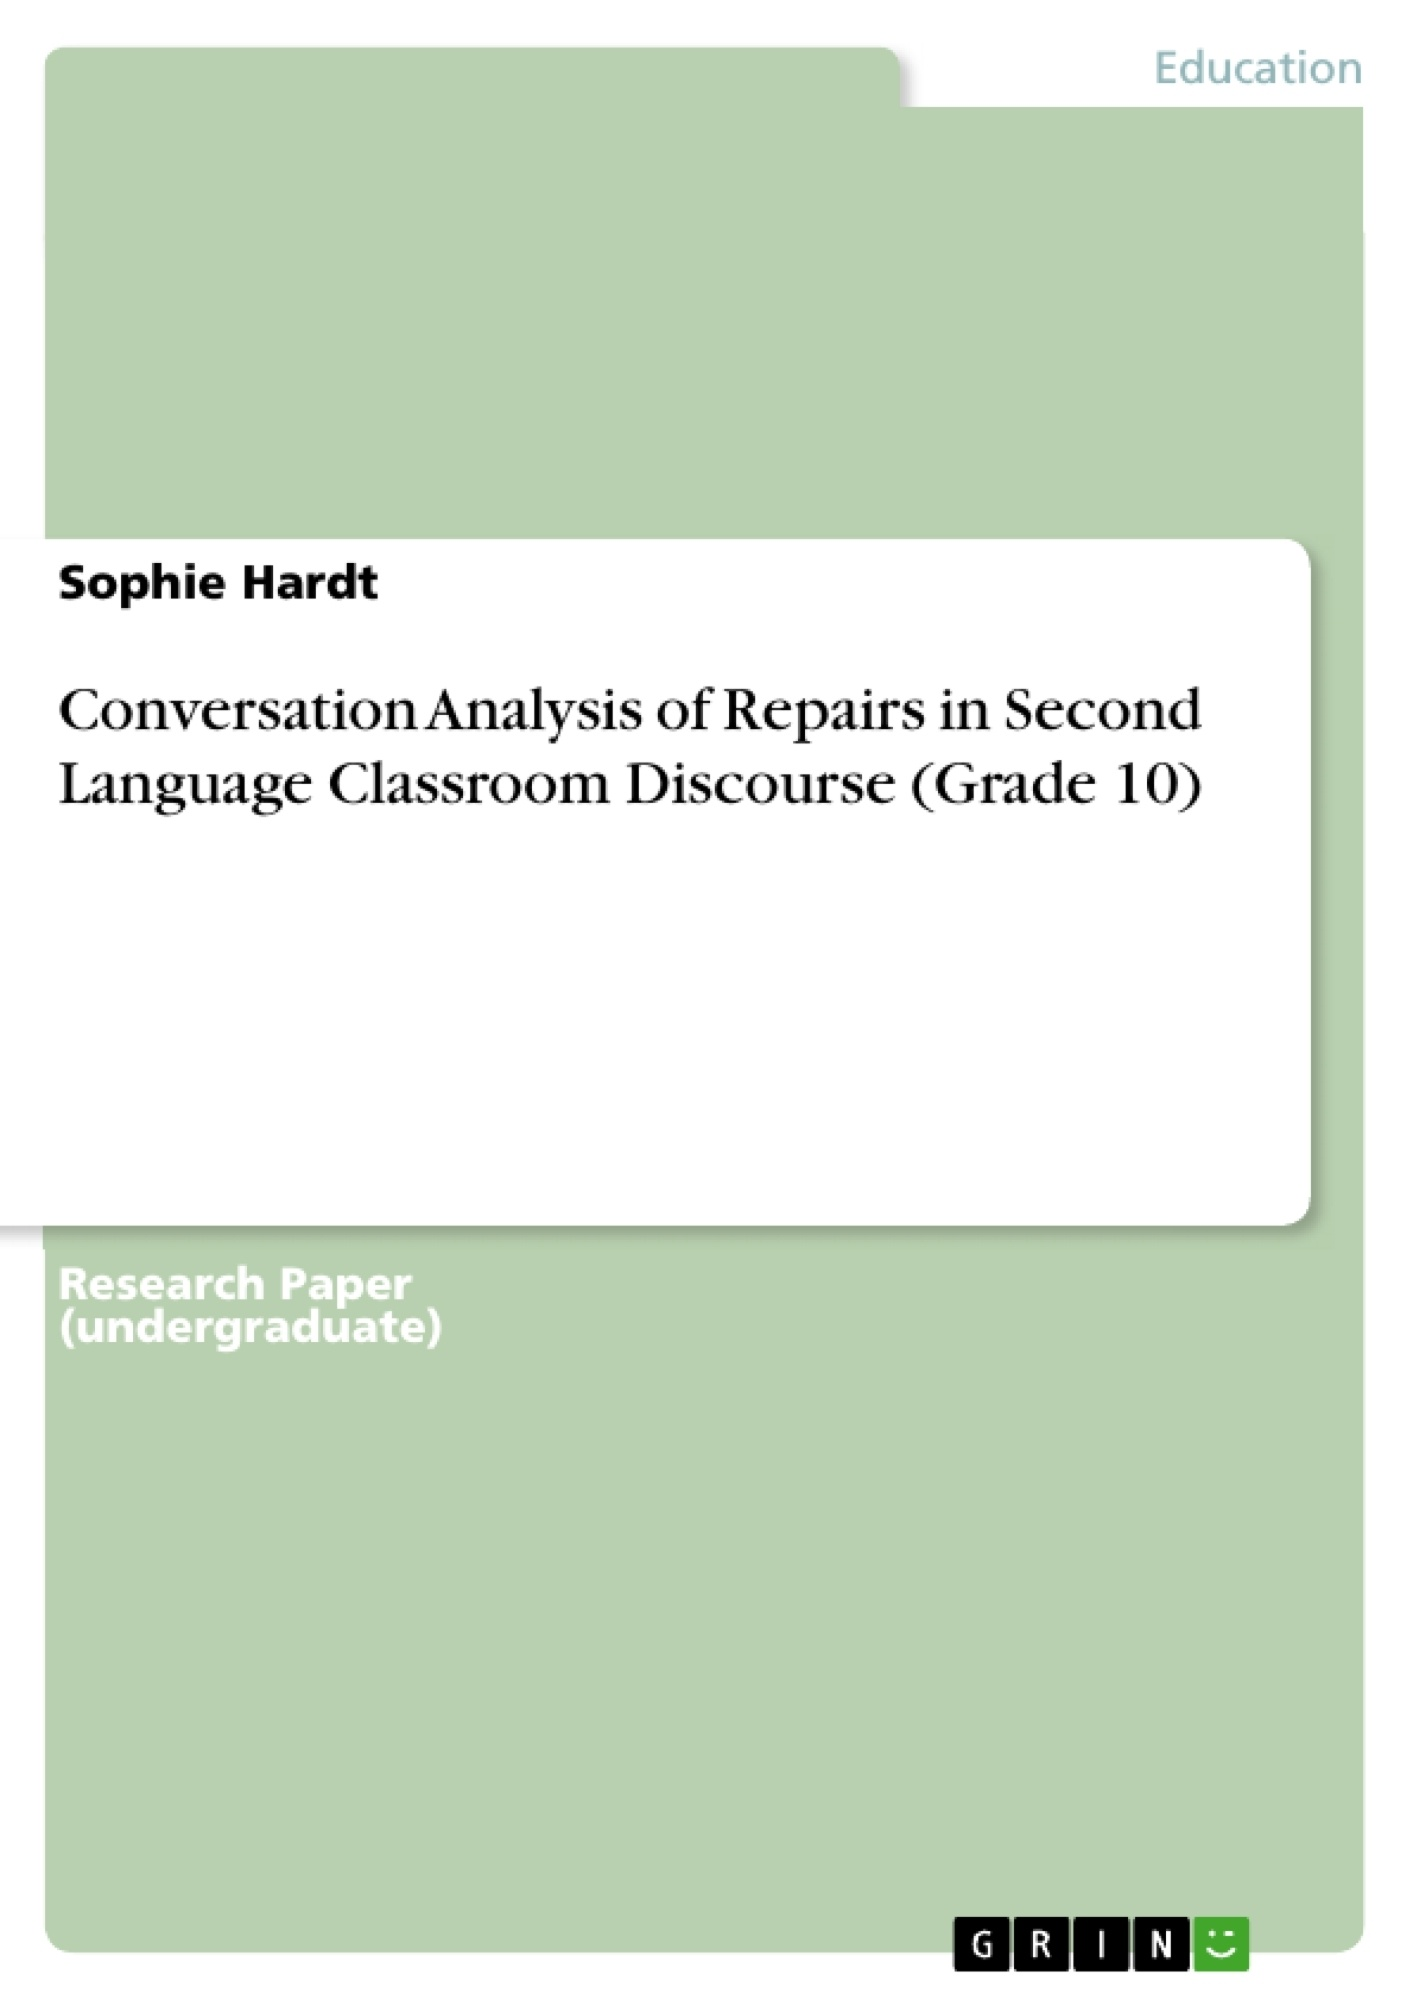 Title: Conversation Analysis of Repairs in Second Language Classroom Discourse (Grade 10)